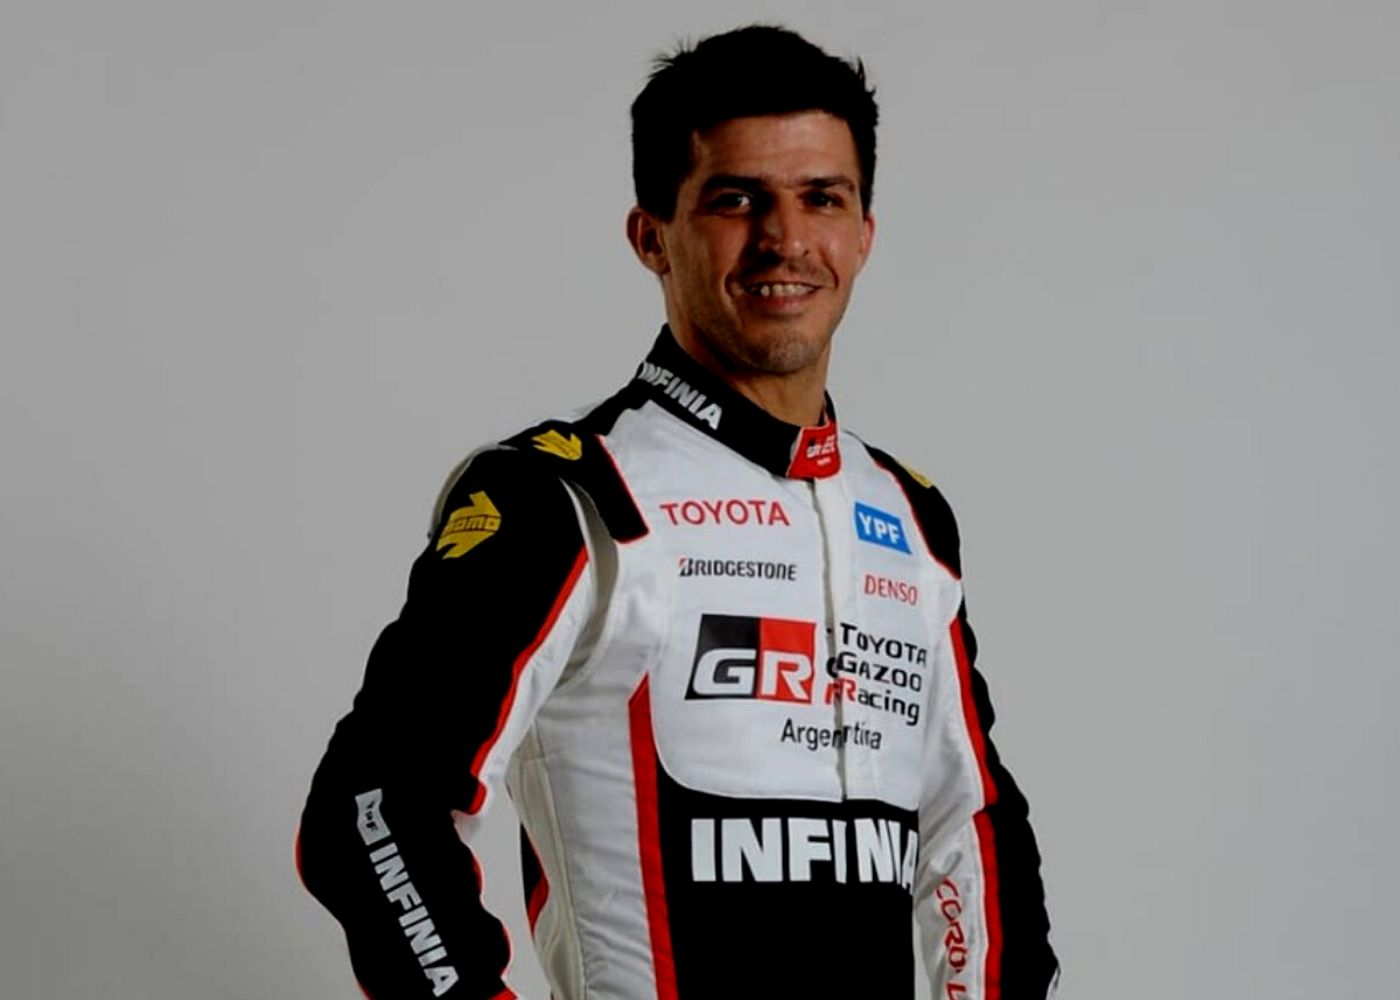 Foto de Hermano multicampeão, Matias Rossi, e Toyota Gazoo Racing integrarão a Full Time Sports em 2020